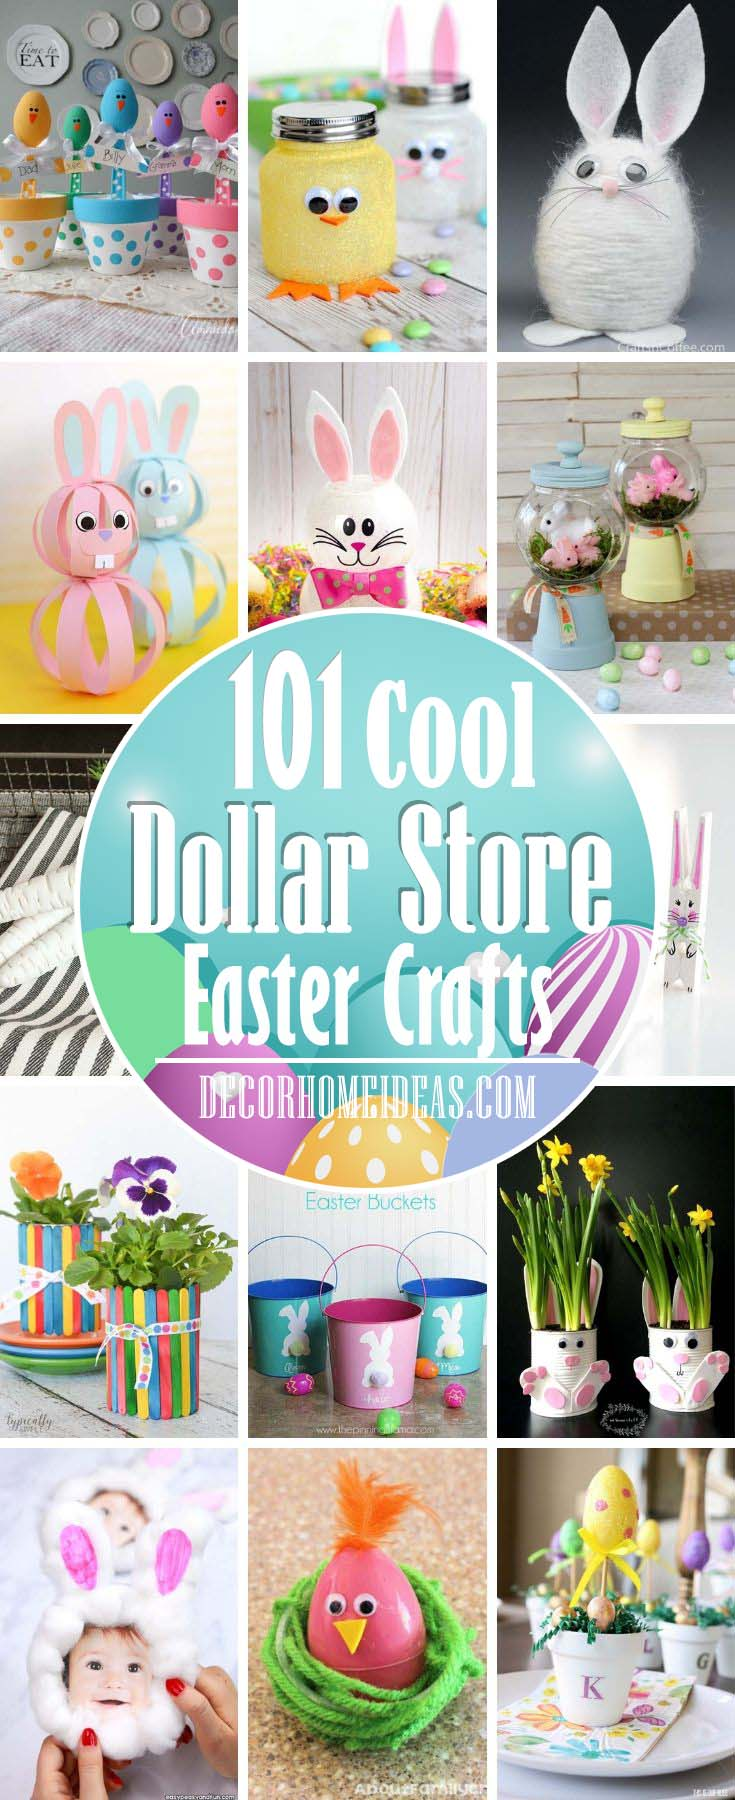 DIY Dollar Store Easter Crafts For You and Your Kid. Bunnies, centerpieces, banners, decorations, paper crafts and more. #diy #dollarstore #crafts #easter #kids #decorhomeideas